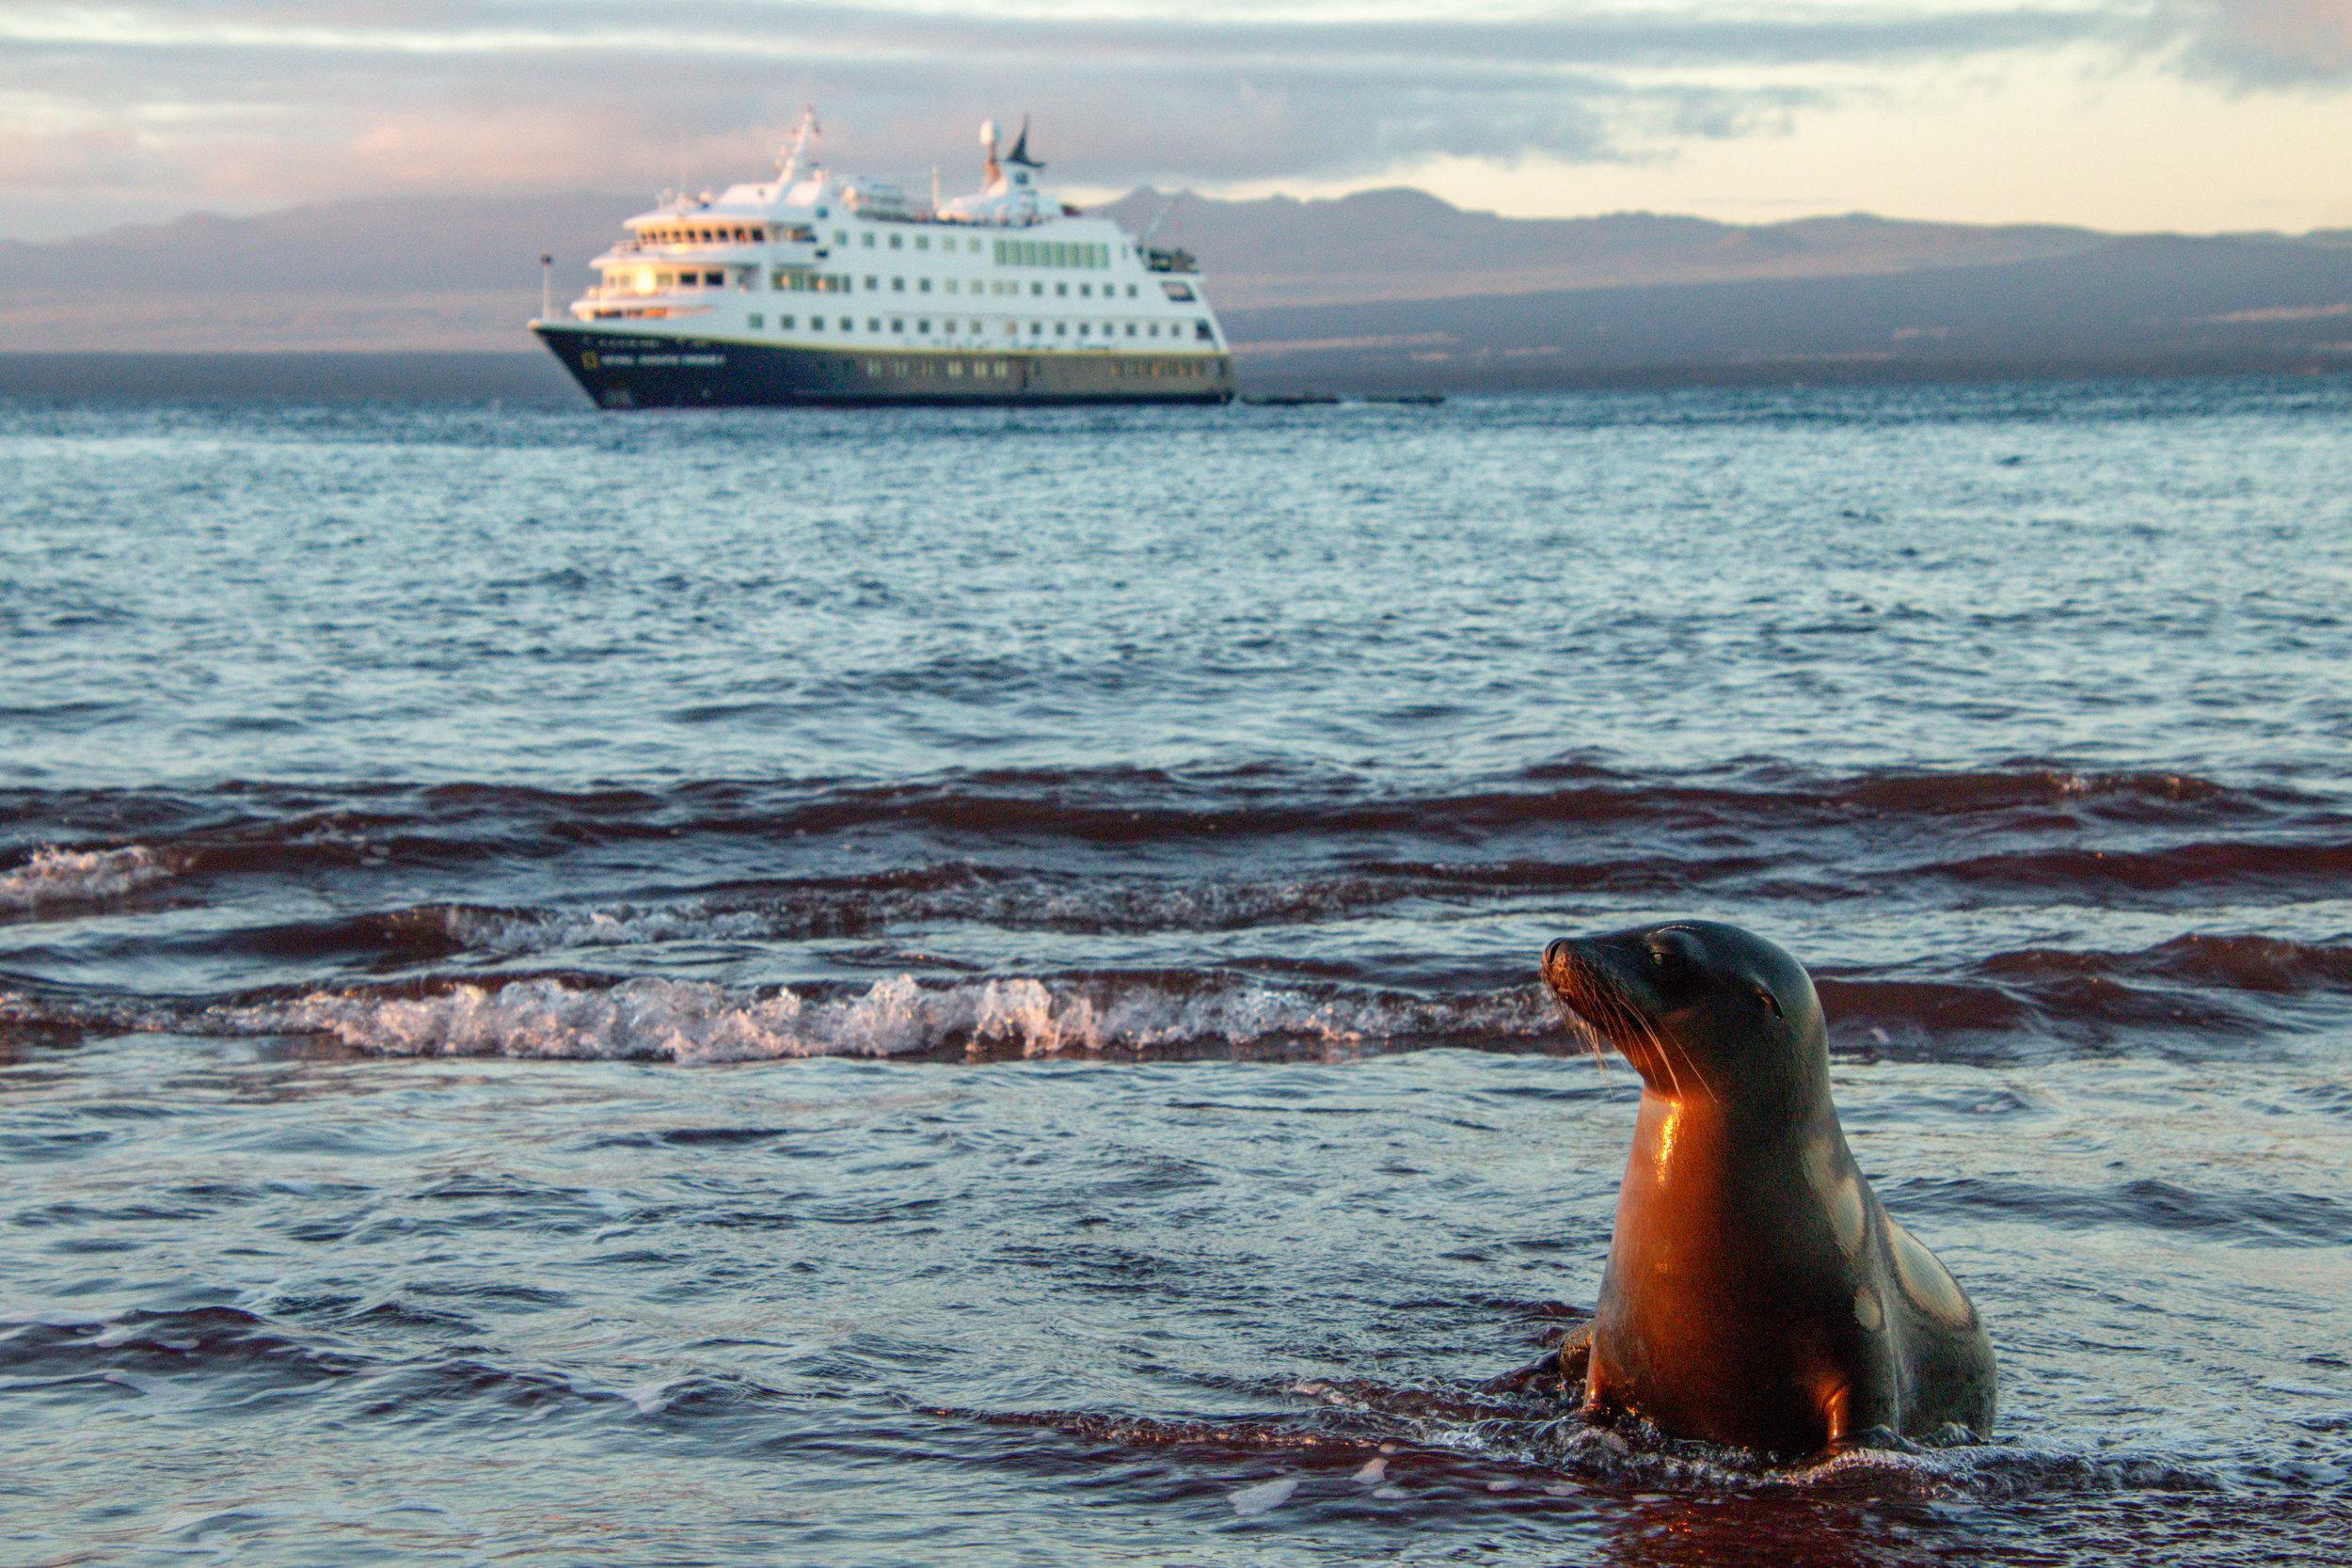 Sea Lion in the water with National Geographic Endeavour 2, Rabida Beach, Galápagos.